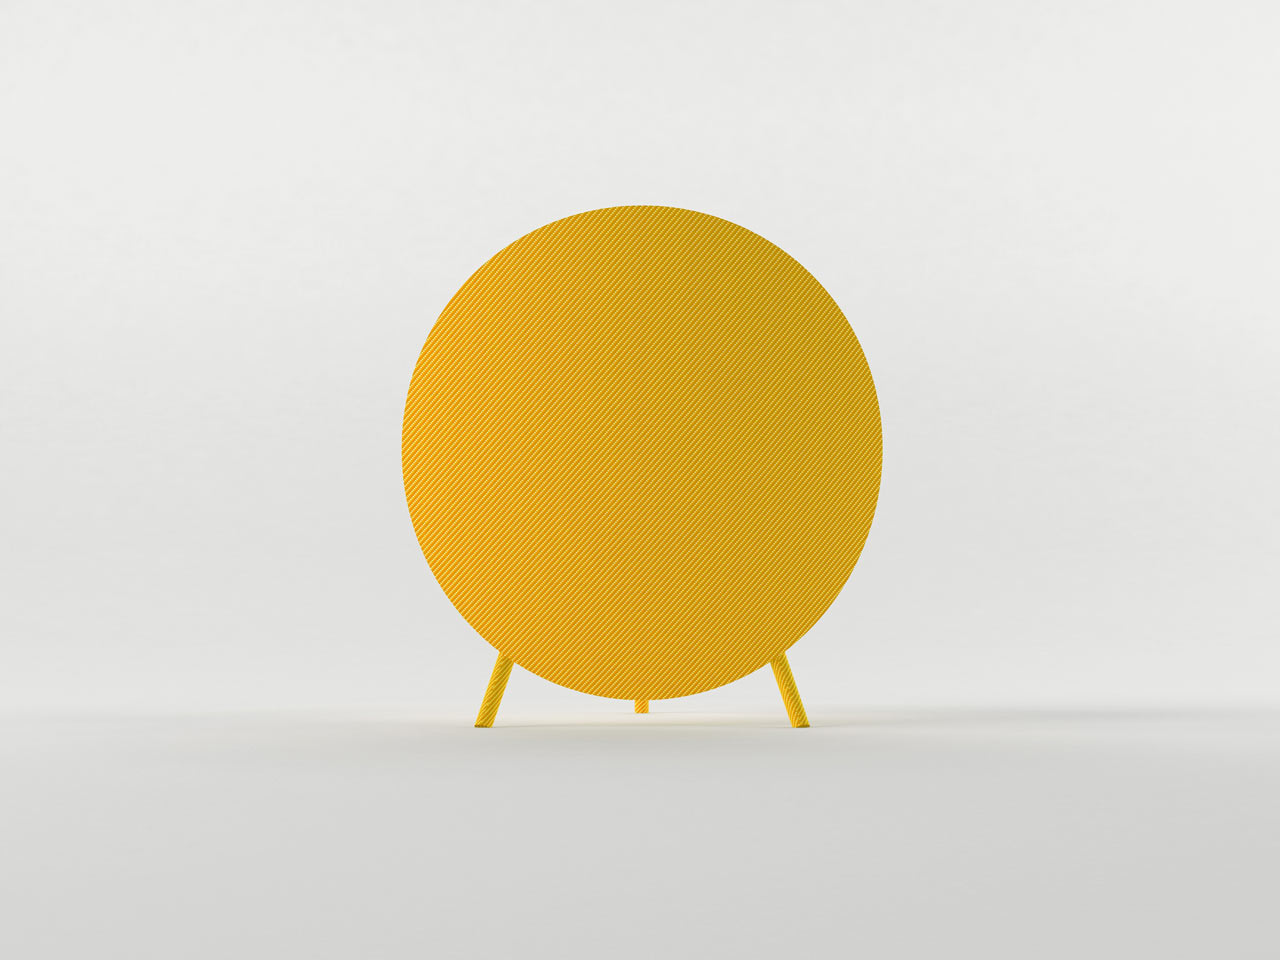 Hypetex-Halo-Chair-Michael-Sodeau-2